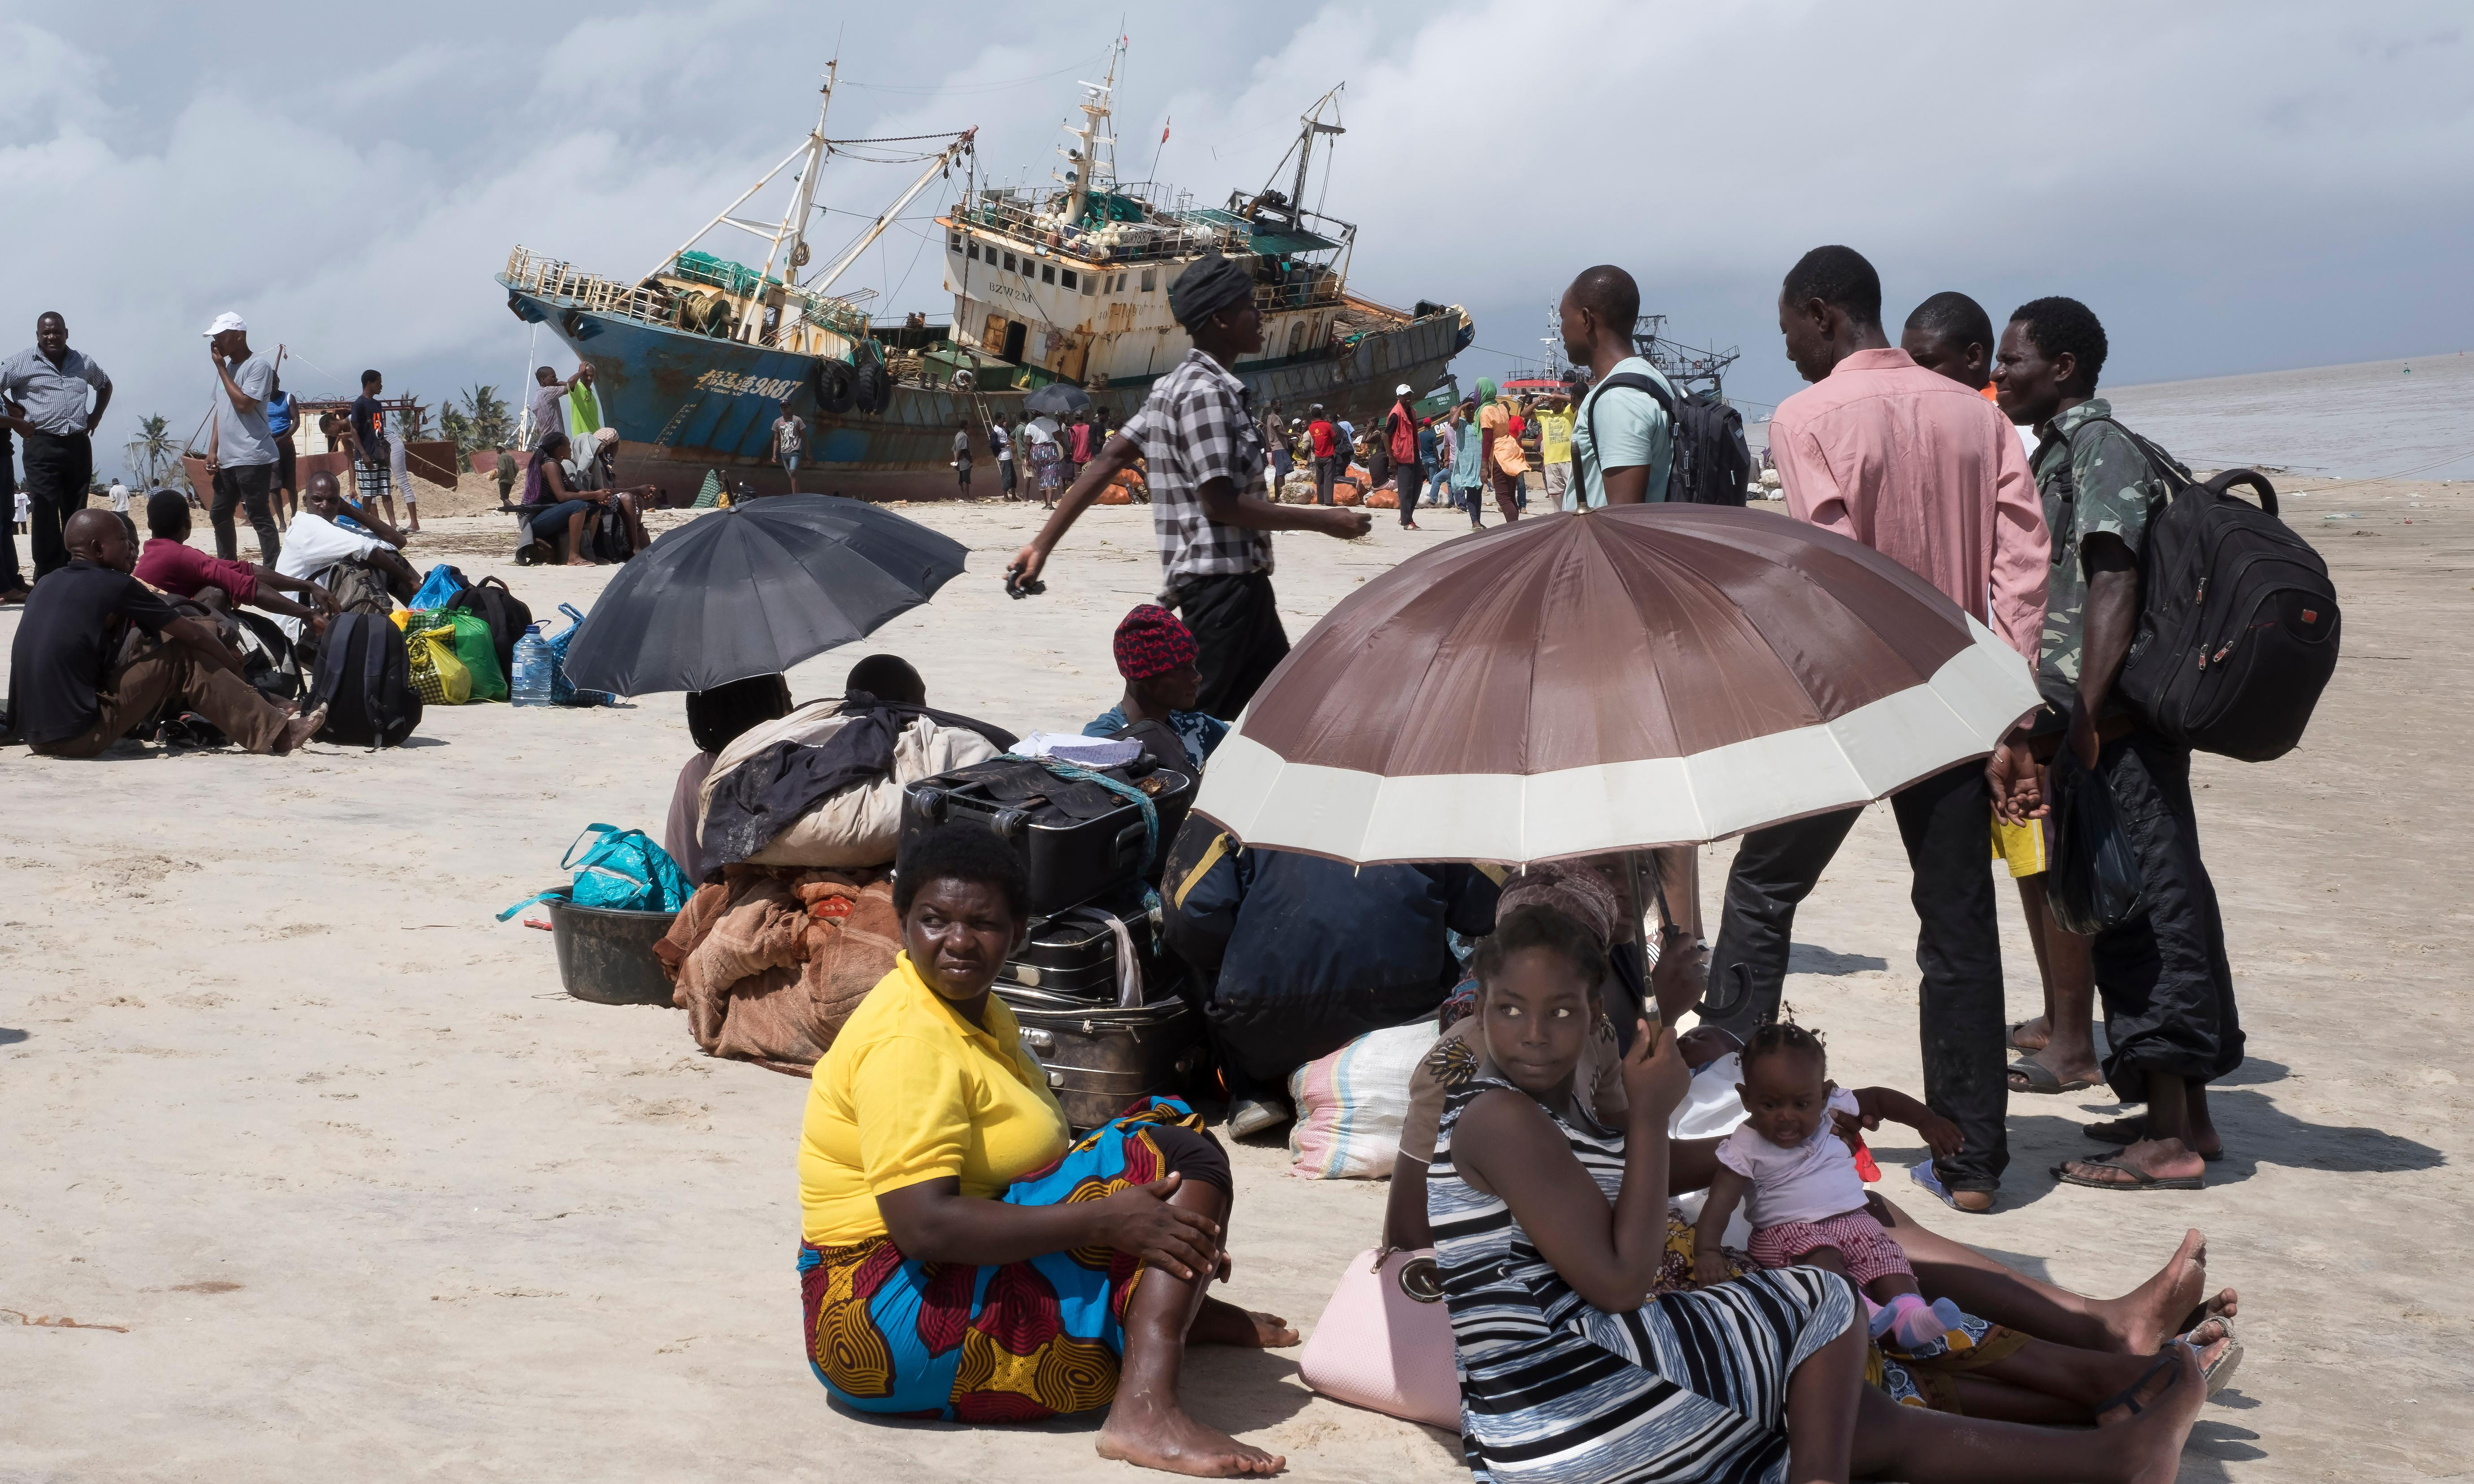 'The water took everything': Buzi evacuees tell of Cyclone Idai ordeal